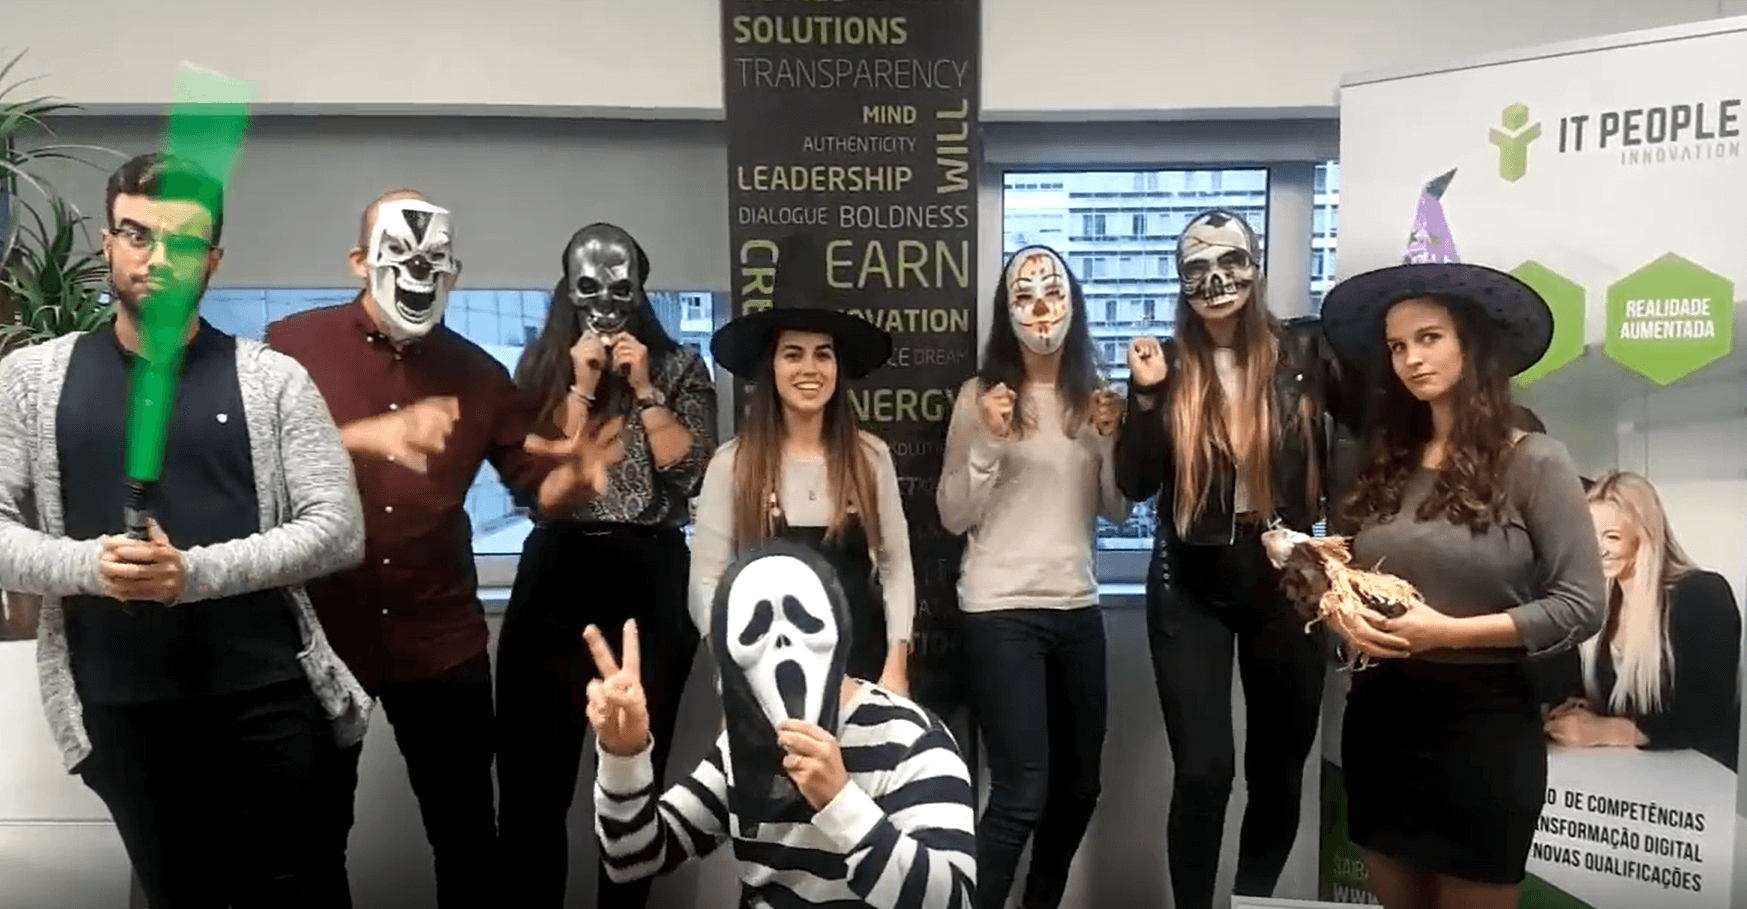 Halloween 2019 - IT People Innovation